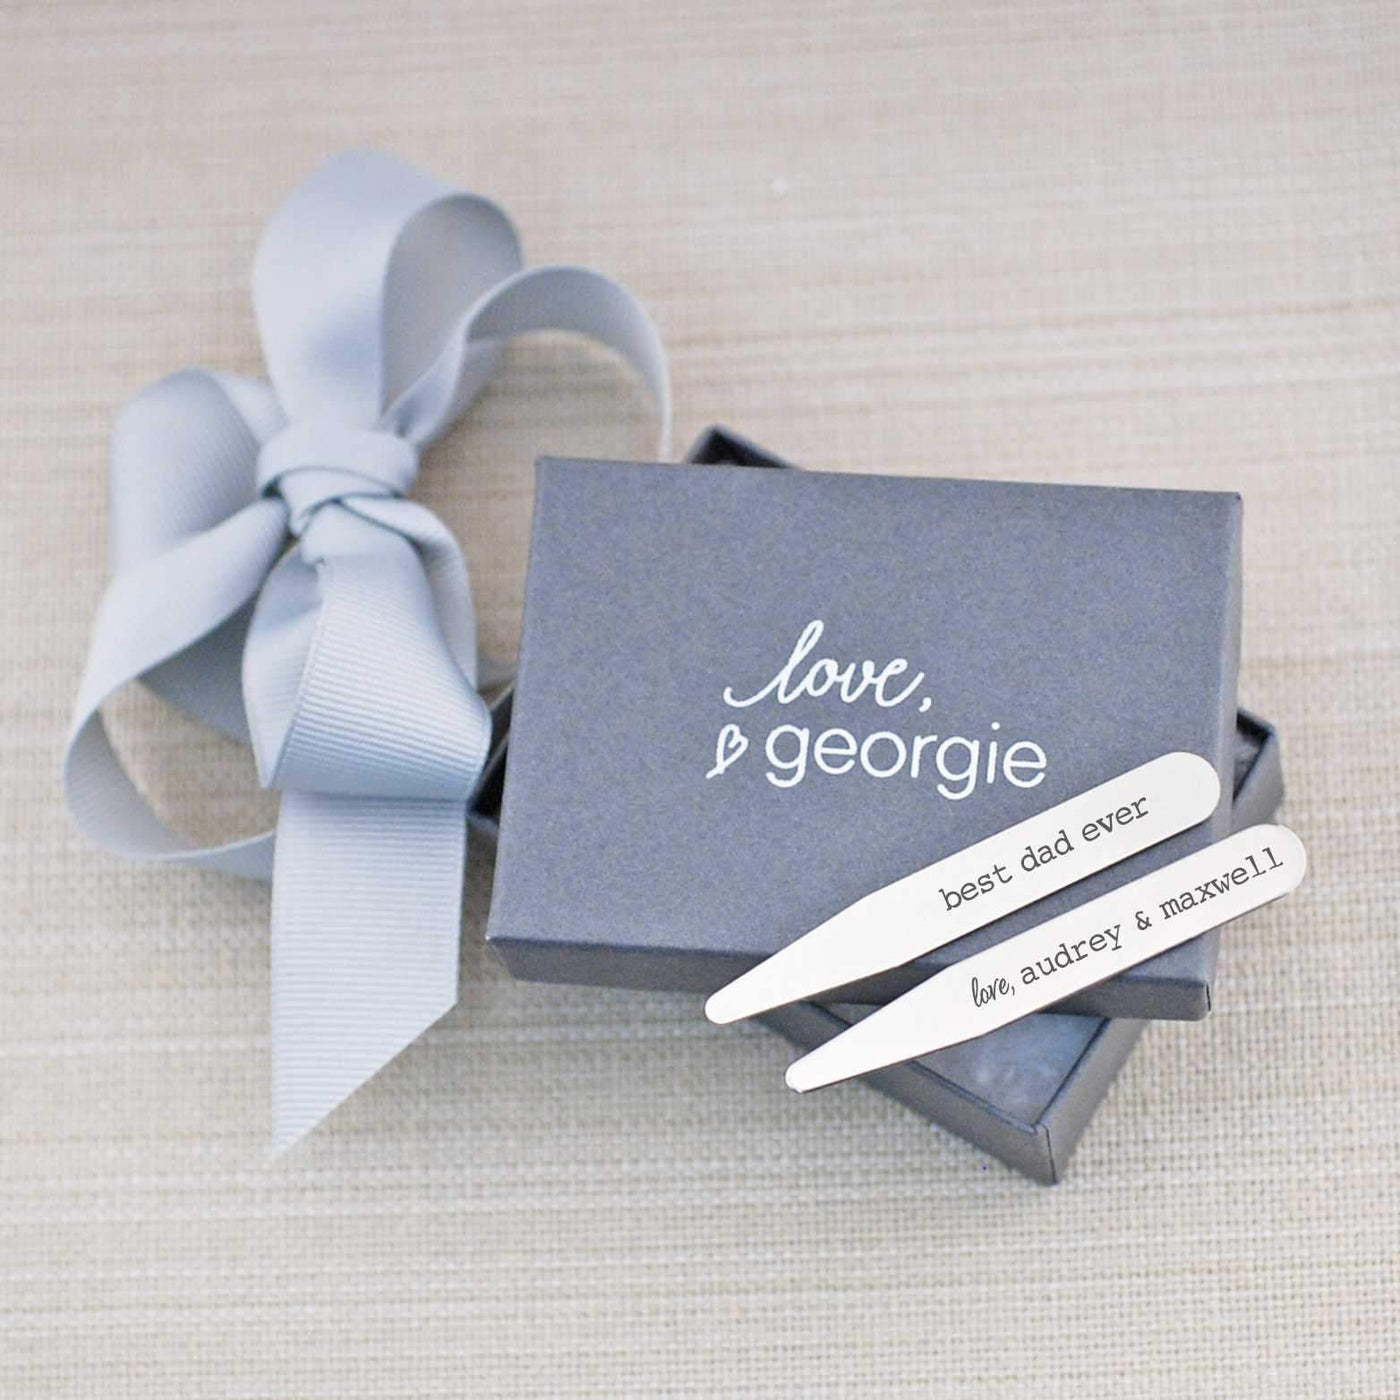 Personalized Collar Stays